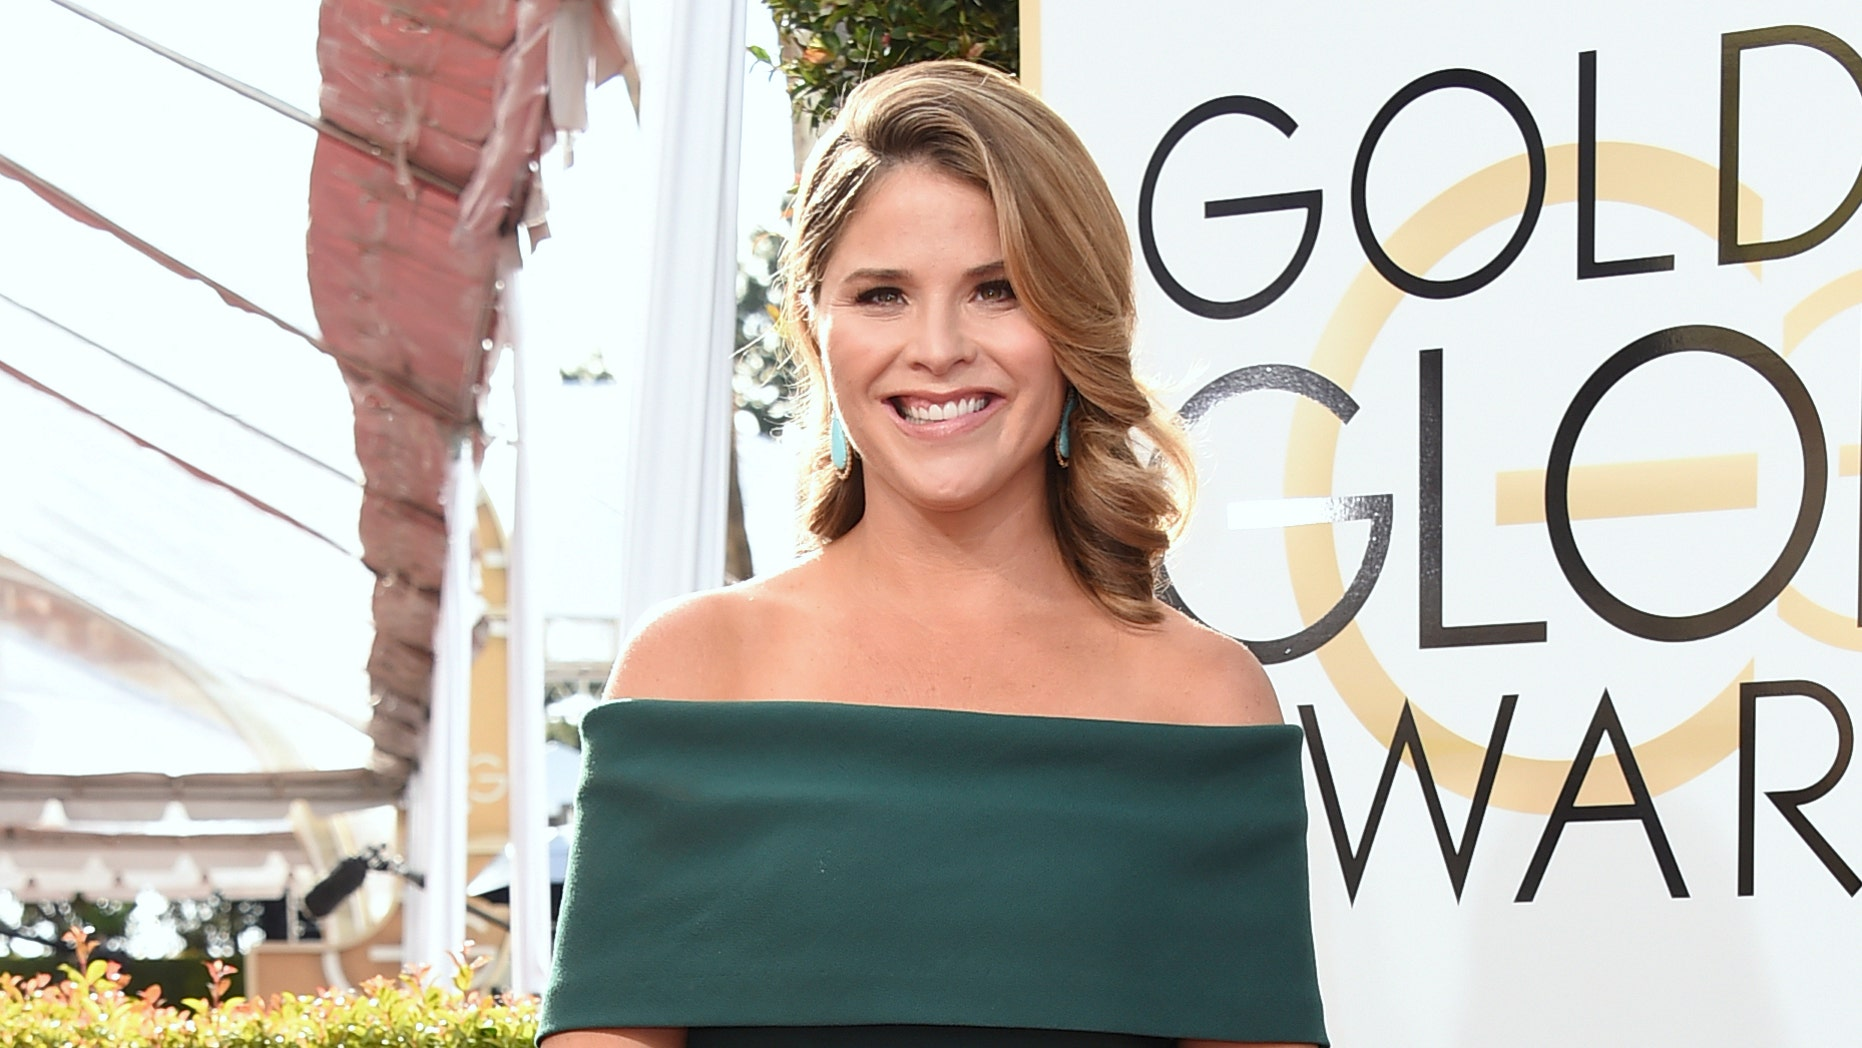 Today's Jenna Bush Hager Is Pregnant With Baby No. 3